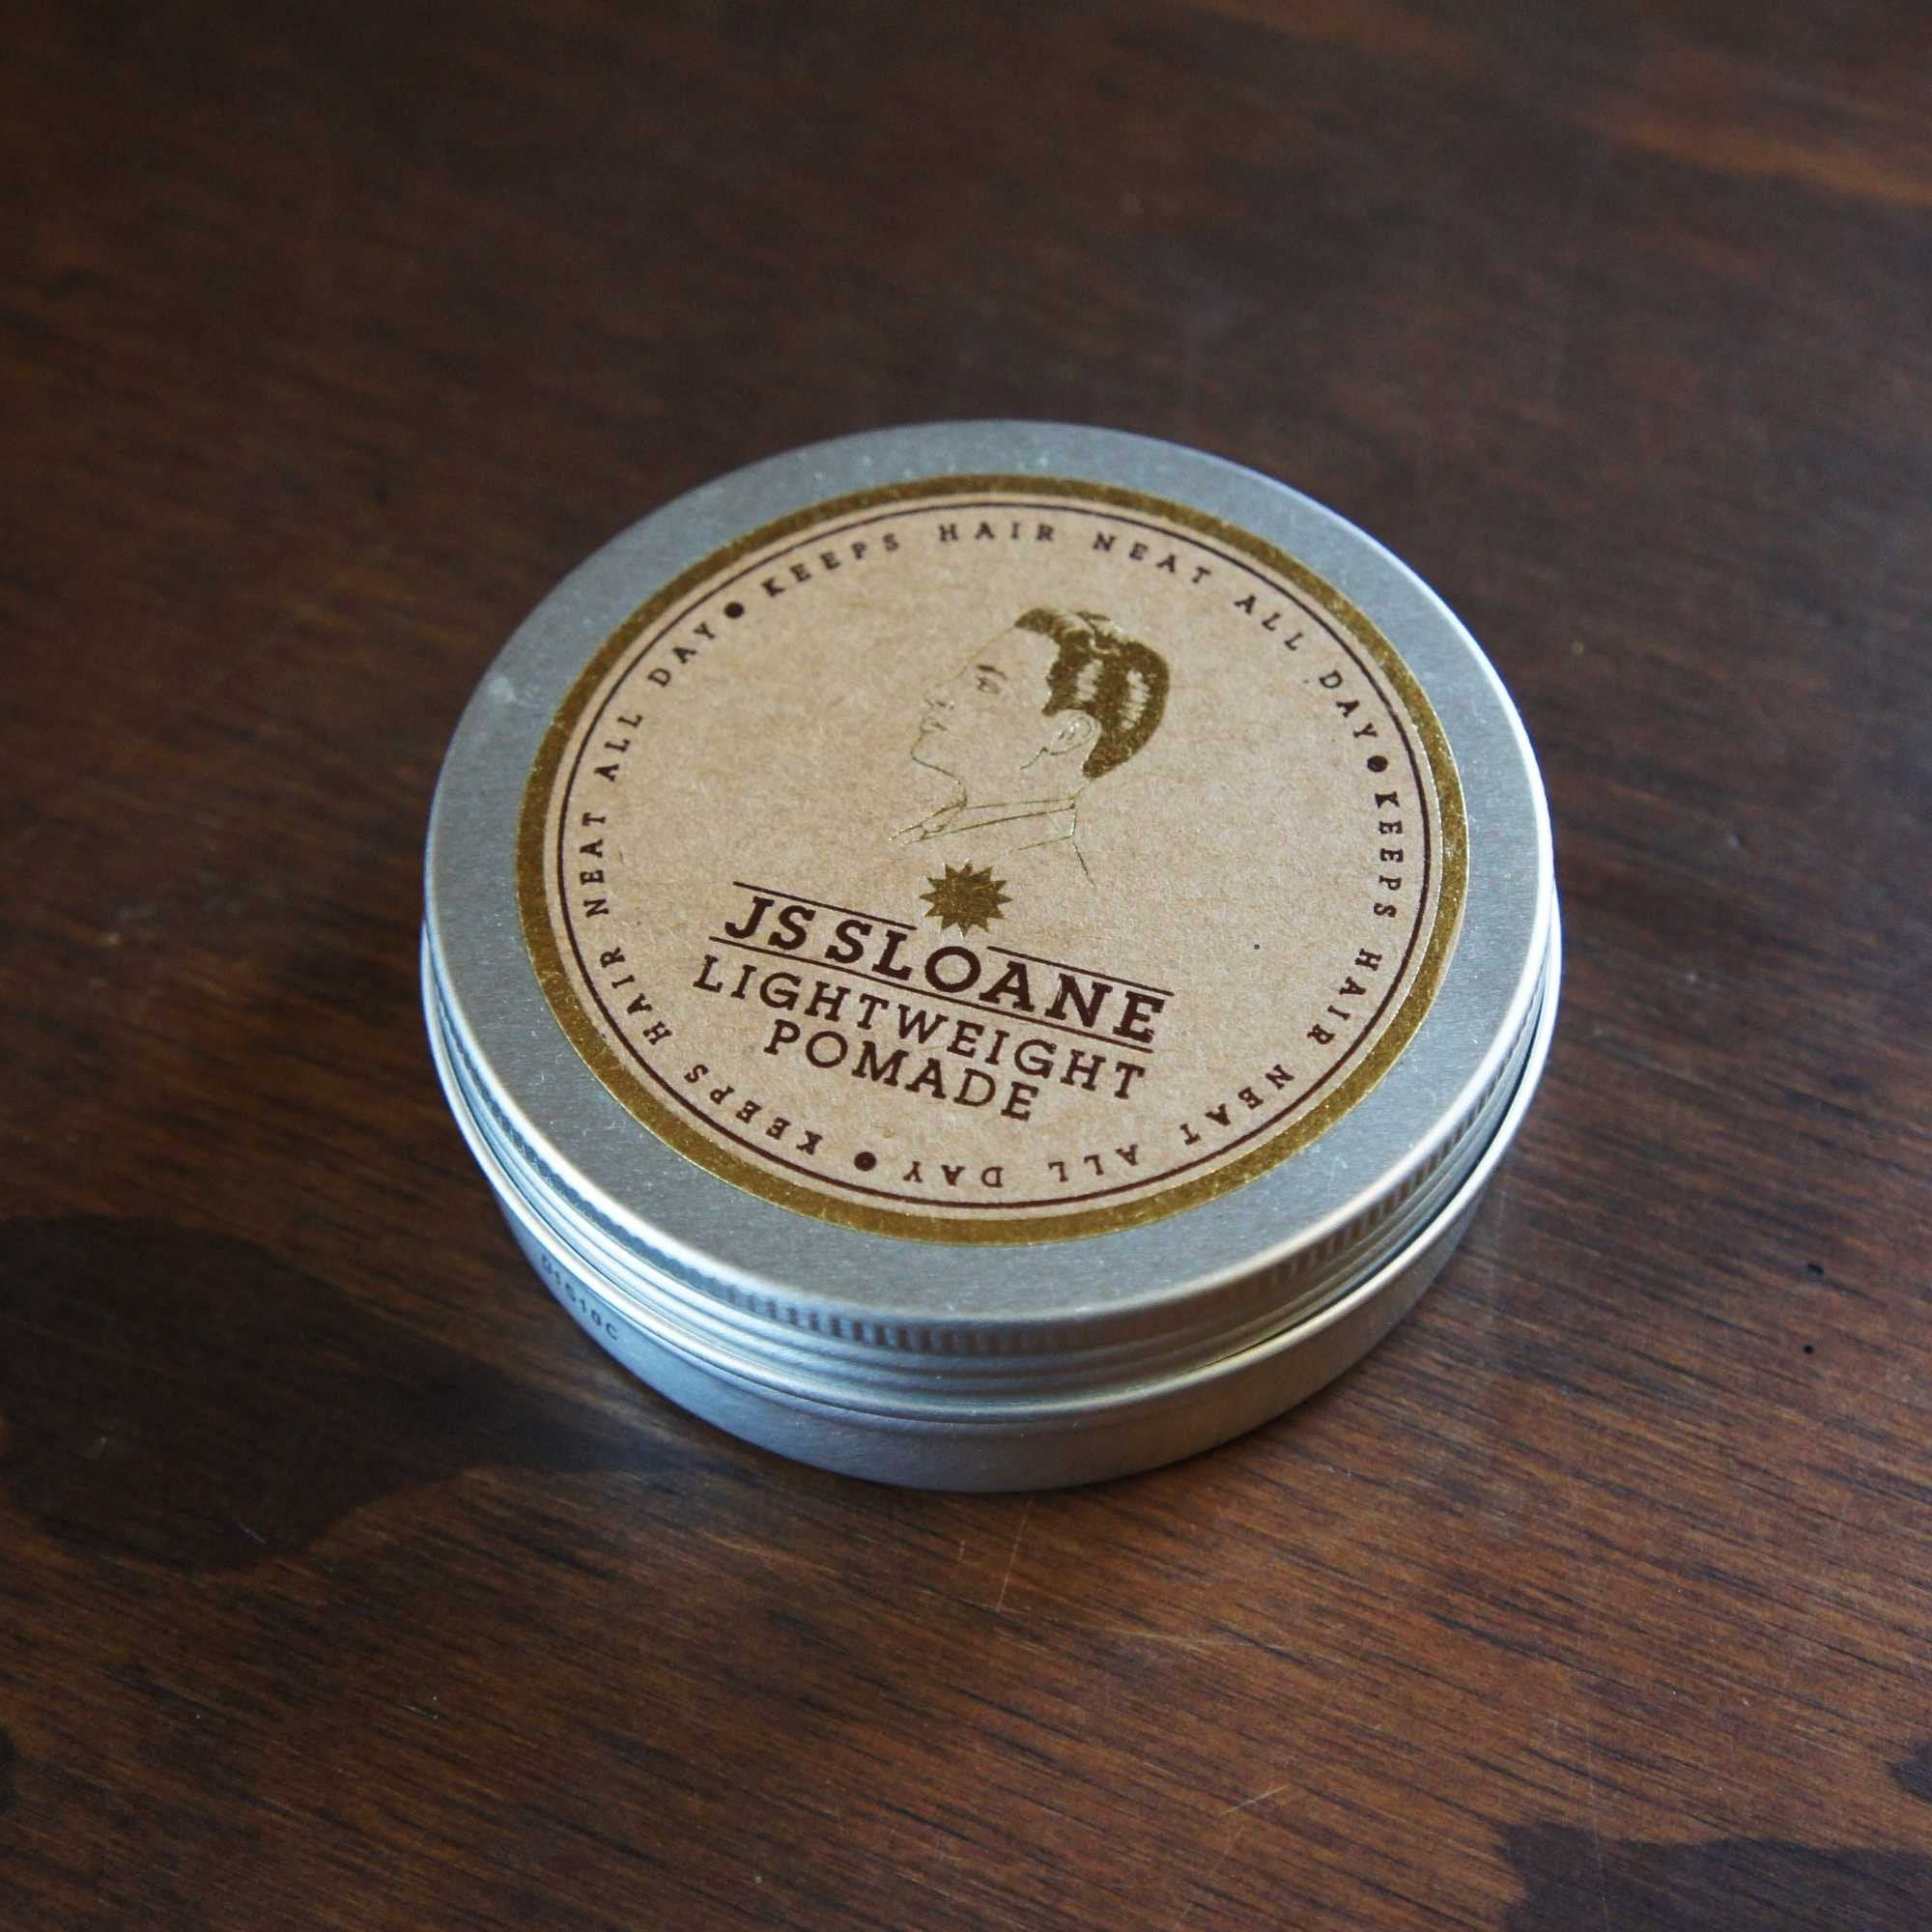 Light Weight Pomade